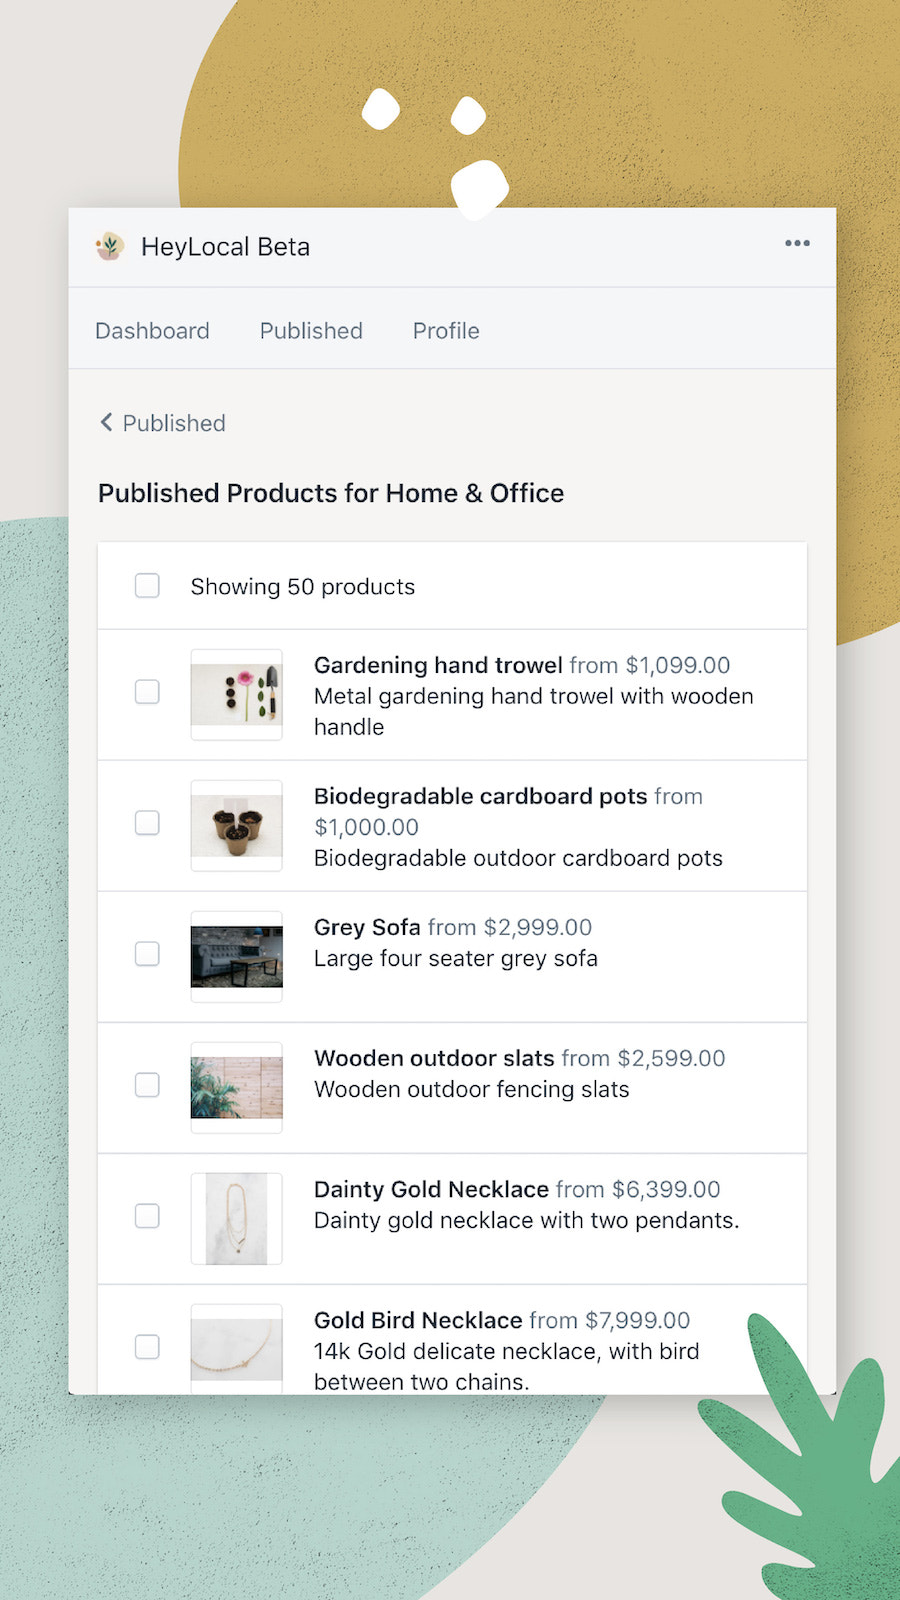 Your published products under a category